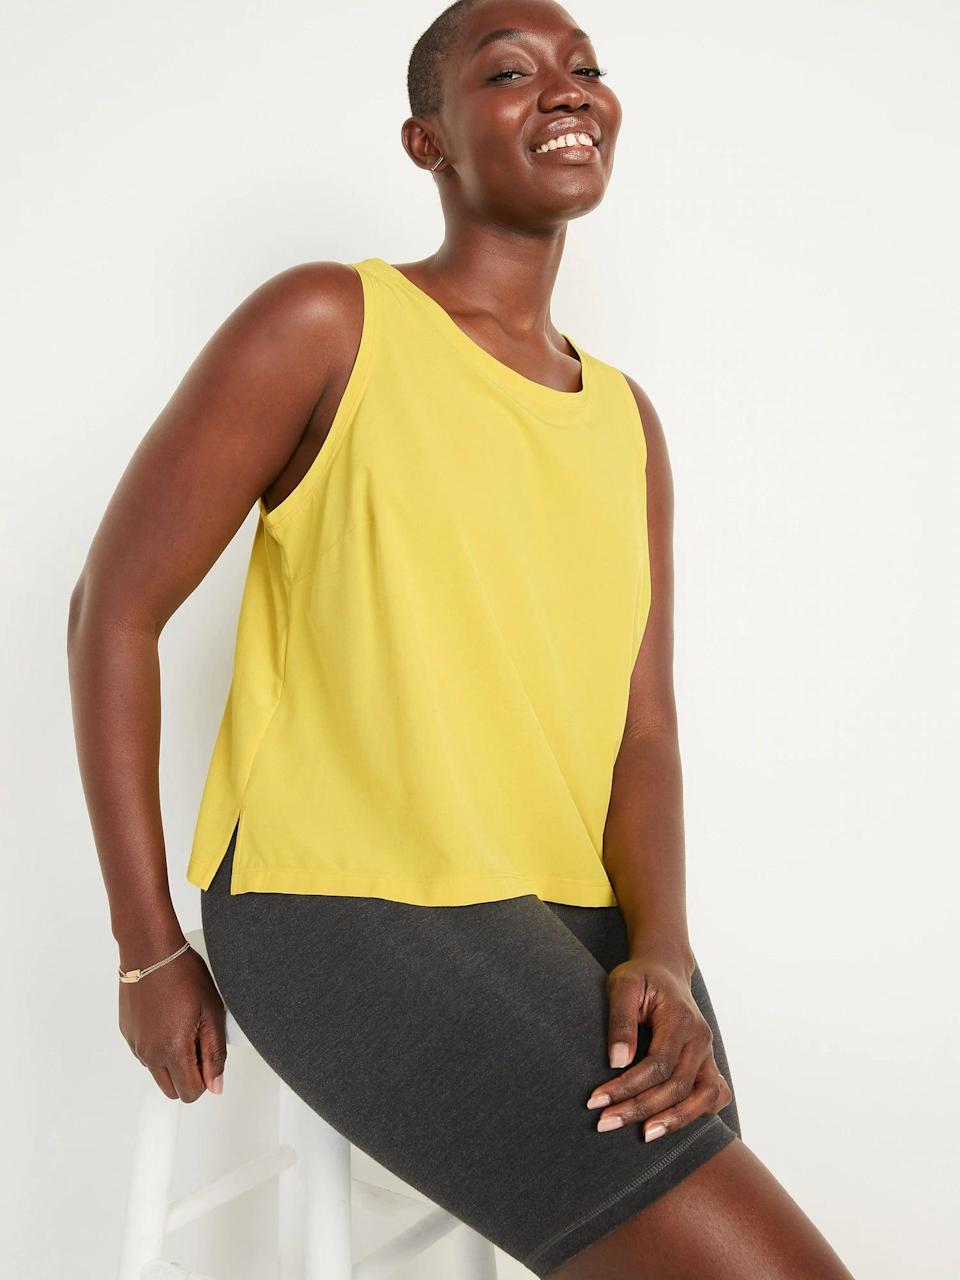 <p>Don't sweat your sweat when you have as this <span>Old Navy StretchTech Crop Tank Top</span> ($8-$10, originally $20) since it dries super quickly with side vents, too.</p>